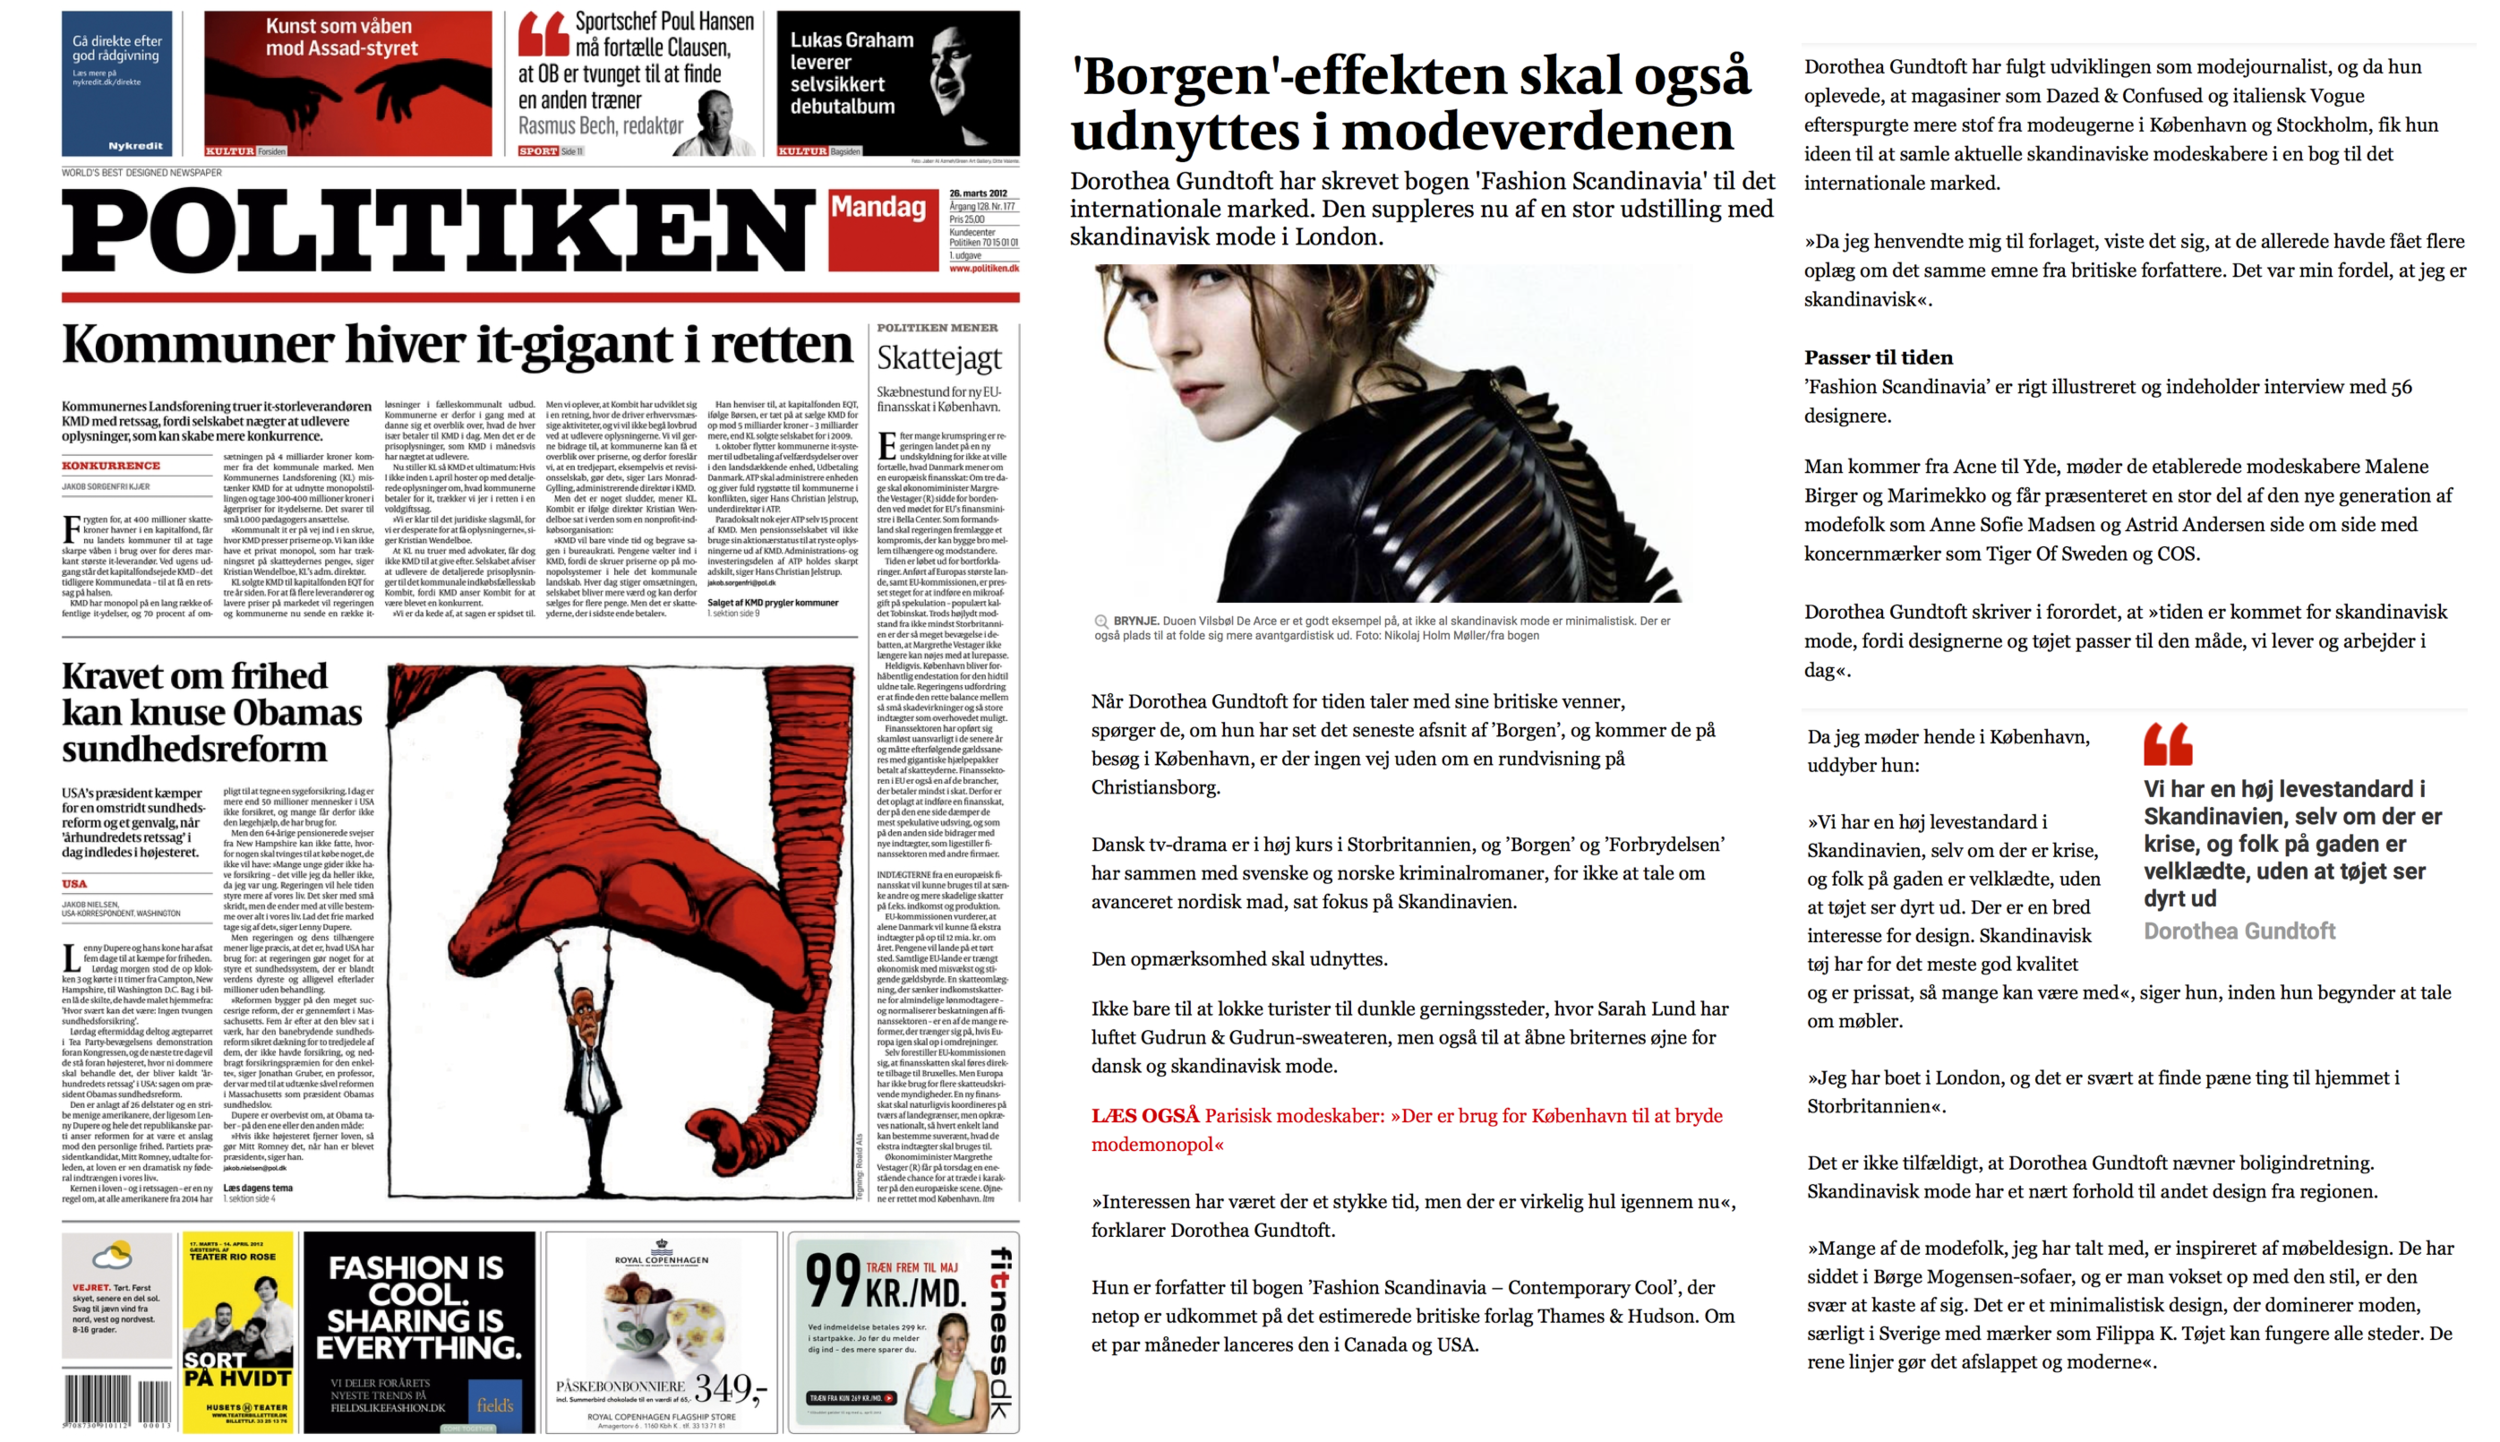 POLITIKEN NEWSPAPER